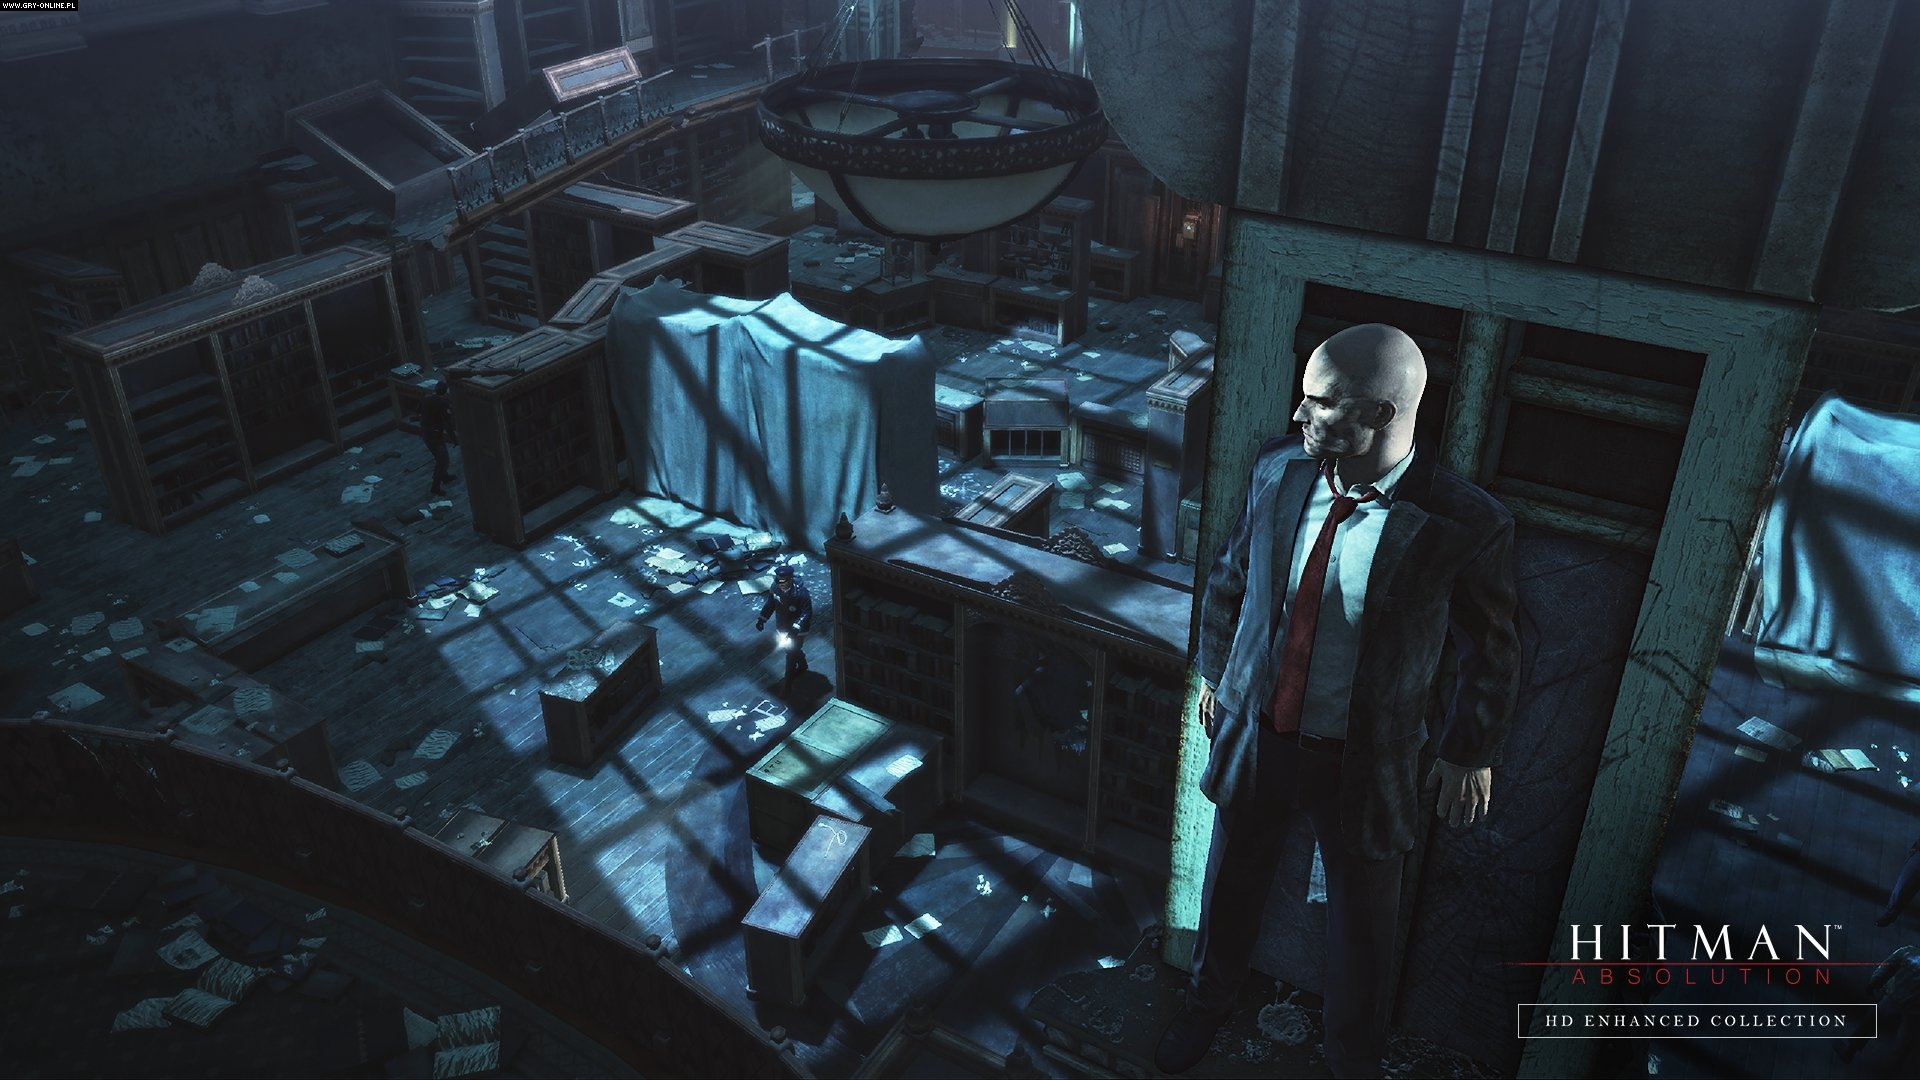 Hitman HD Enhanced Collection PS4, XONE Games Image 16/16, IO Interactive